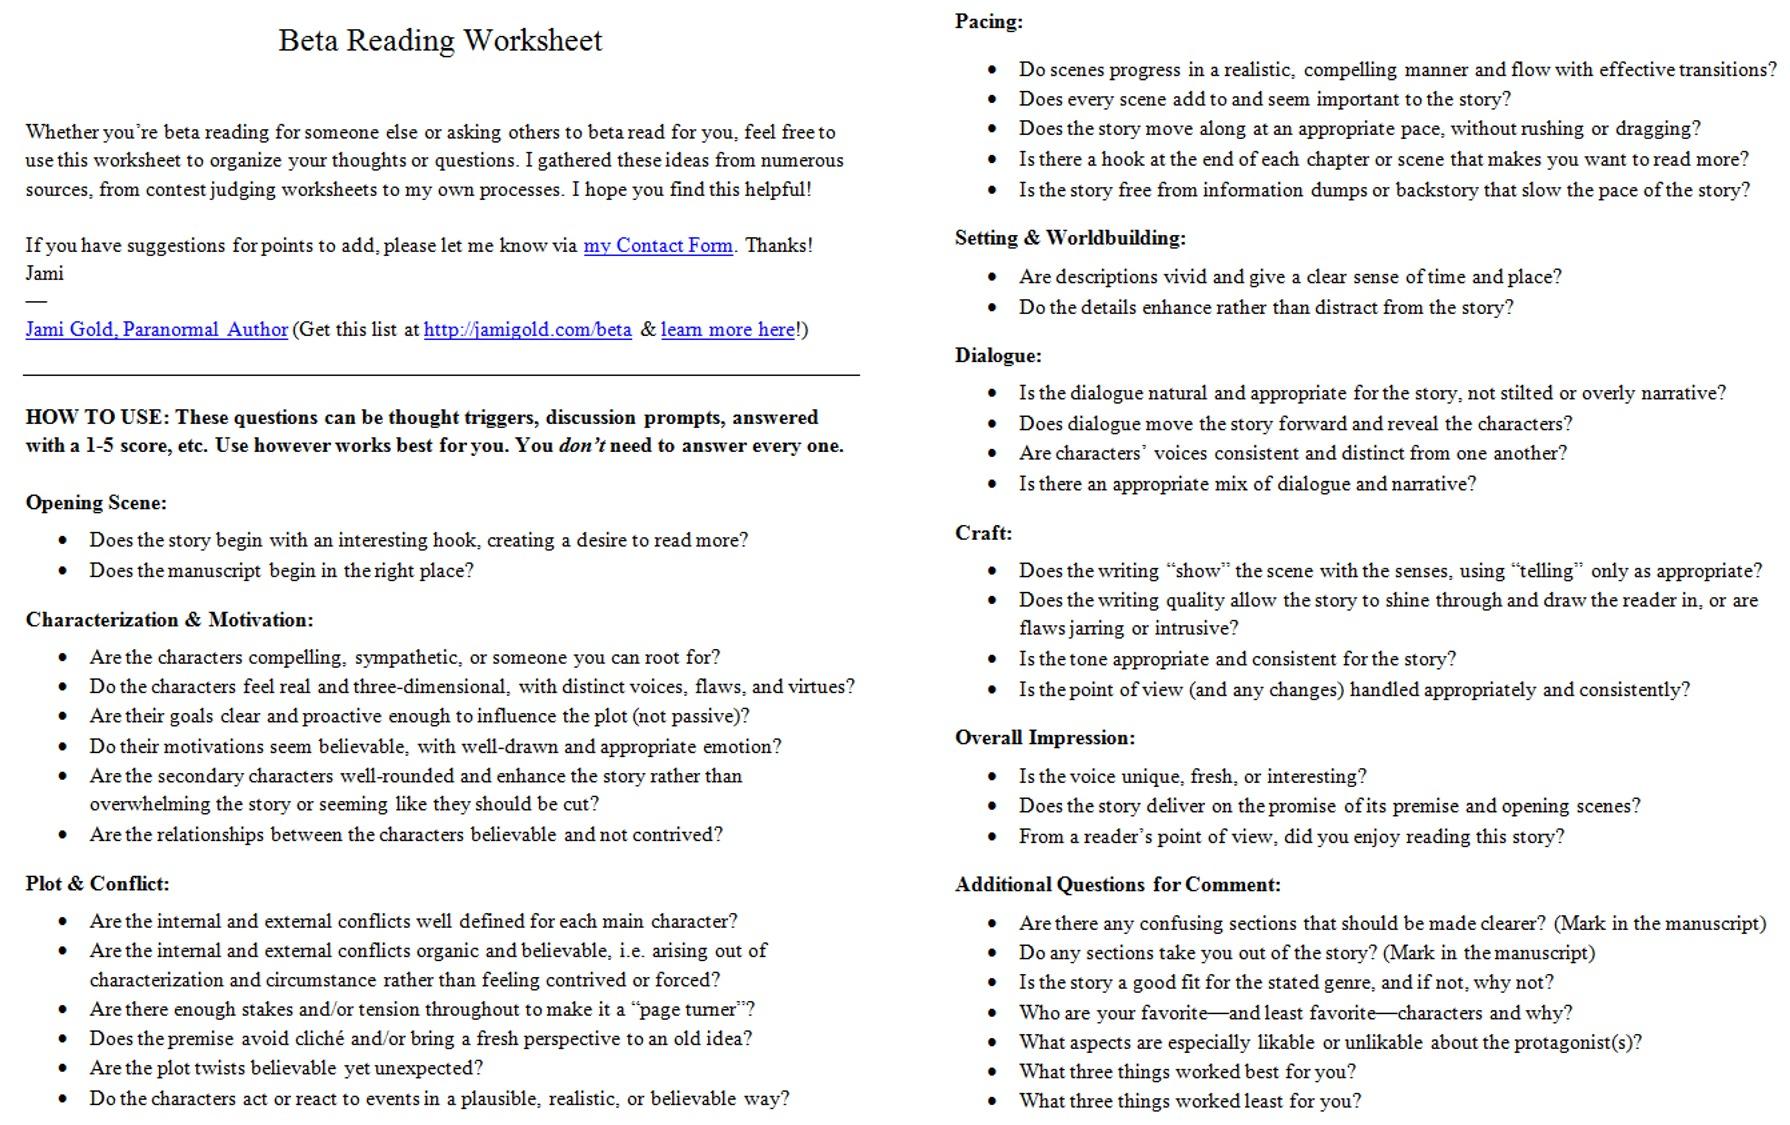 Aldiablosus  Marvellous Worksheets For Writers  Jami Gold Paranormal Author With Great Screen Shot Of The Twopage Beta Reading Worksheet With Delightful Letter M Worksheets For Pre K Also Printable Maths Worksheets Year  In Addition Free Graphs Worksheets And Prepositions Esl Worksheet As Well As Using Colons Worksheet Additionally Number Bonds To  Worksheets From Jamigoldcom With Aldiablosus  Great Worksheets For Writers  Jami Gold Paranormal Author With Delightful Screen Shot Of The Twopage Beta Reading Worksheet And Marvellous Letter M Worksheets For Pre K Also Printable Maths Worksheets Year  In Addition Free Graphs Worksheets From Jamigoldcom